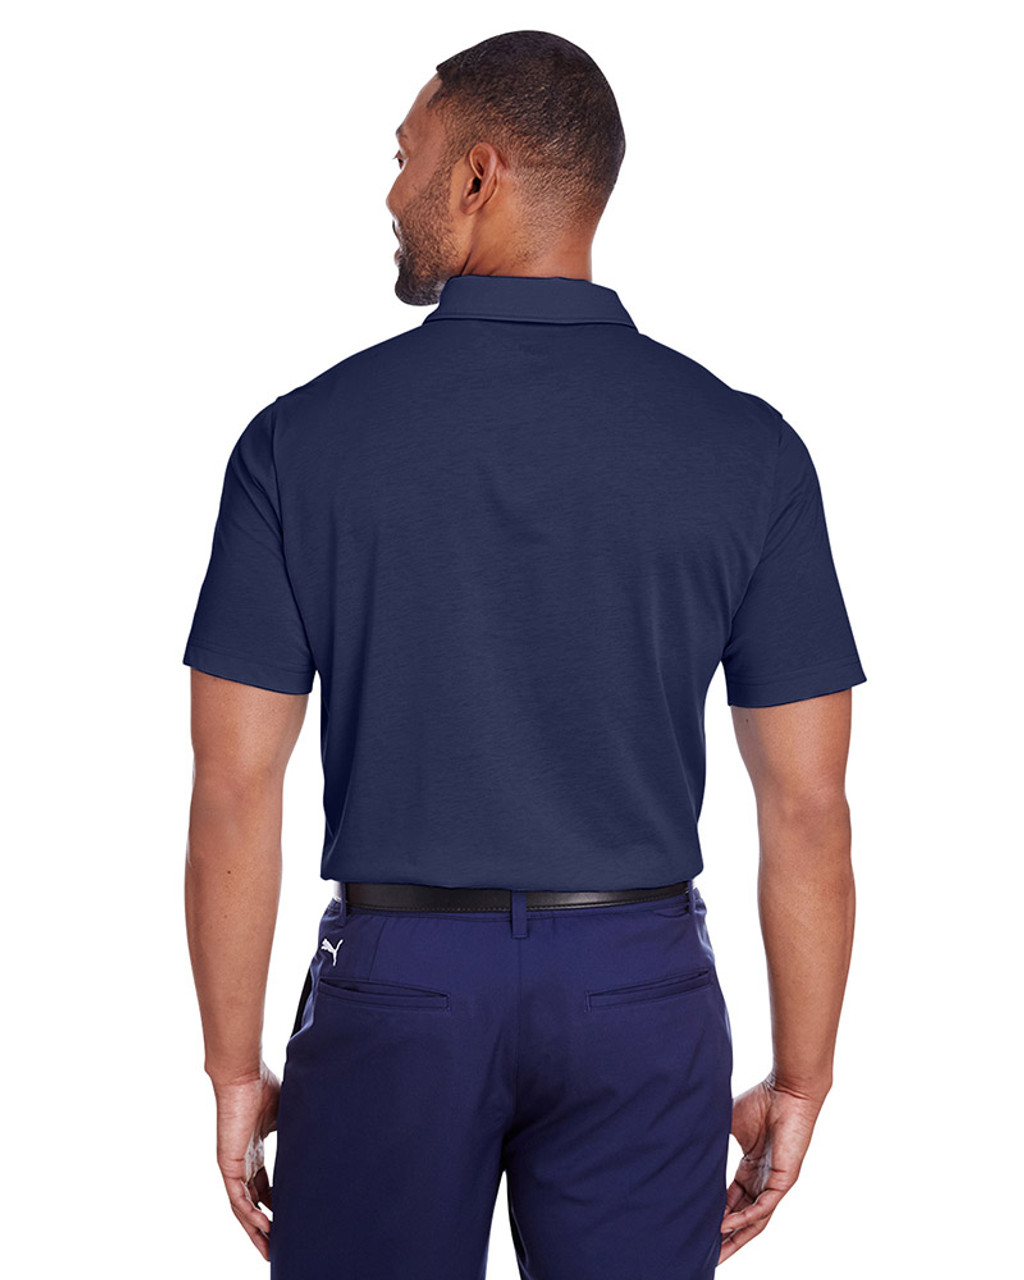 Peacoat - back, 596920 Puma Golf Men's Fusion Polo | Blankclothing.ca